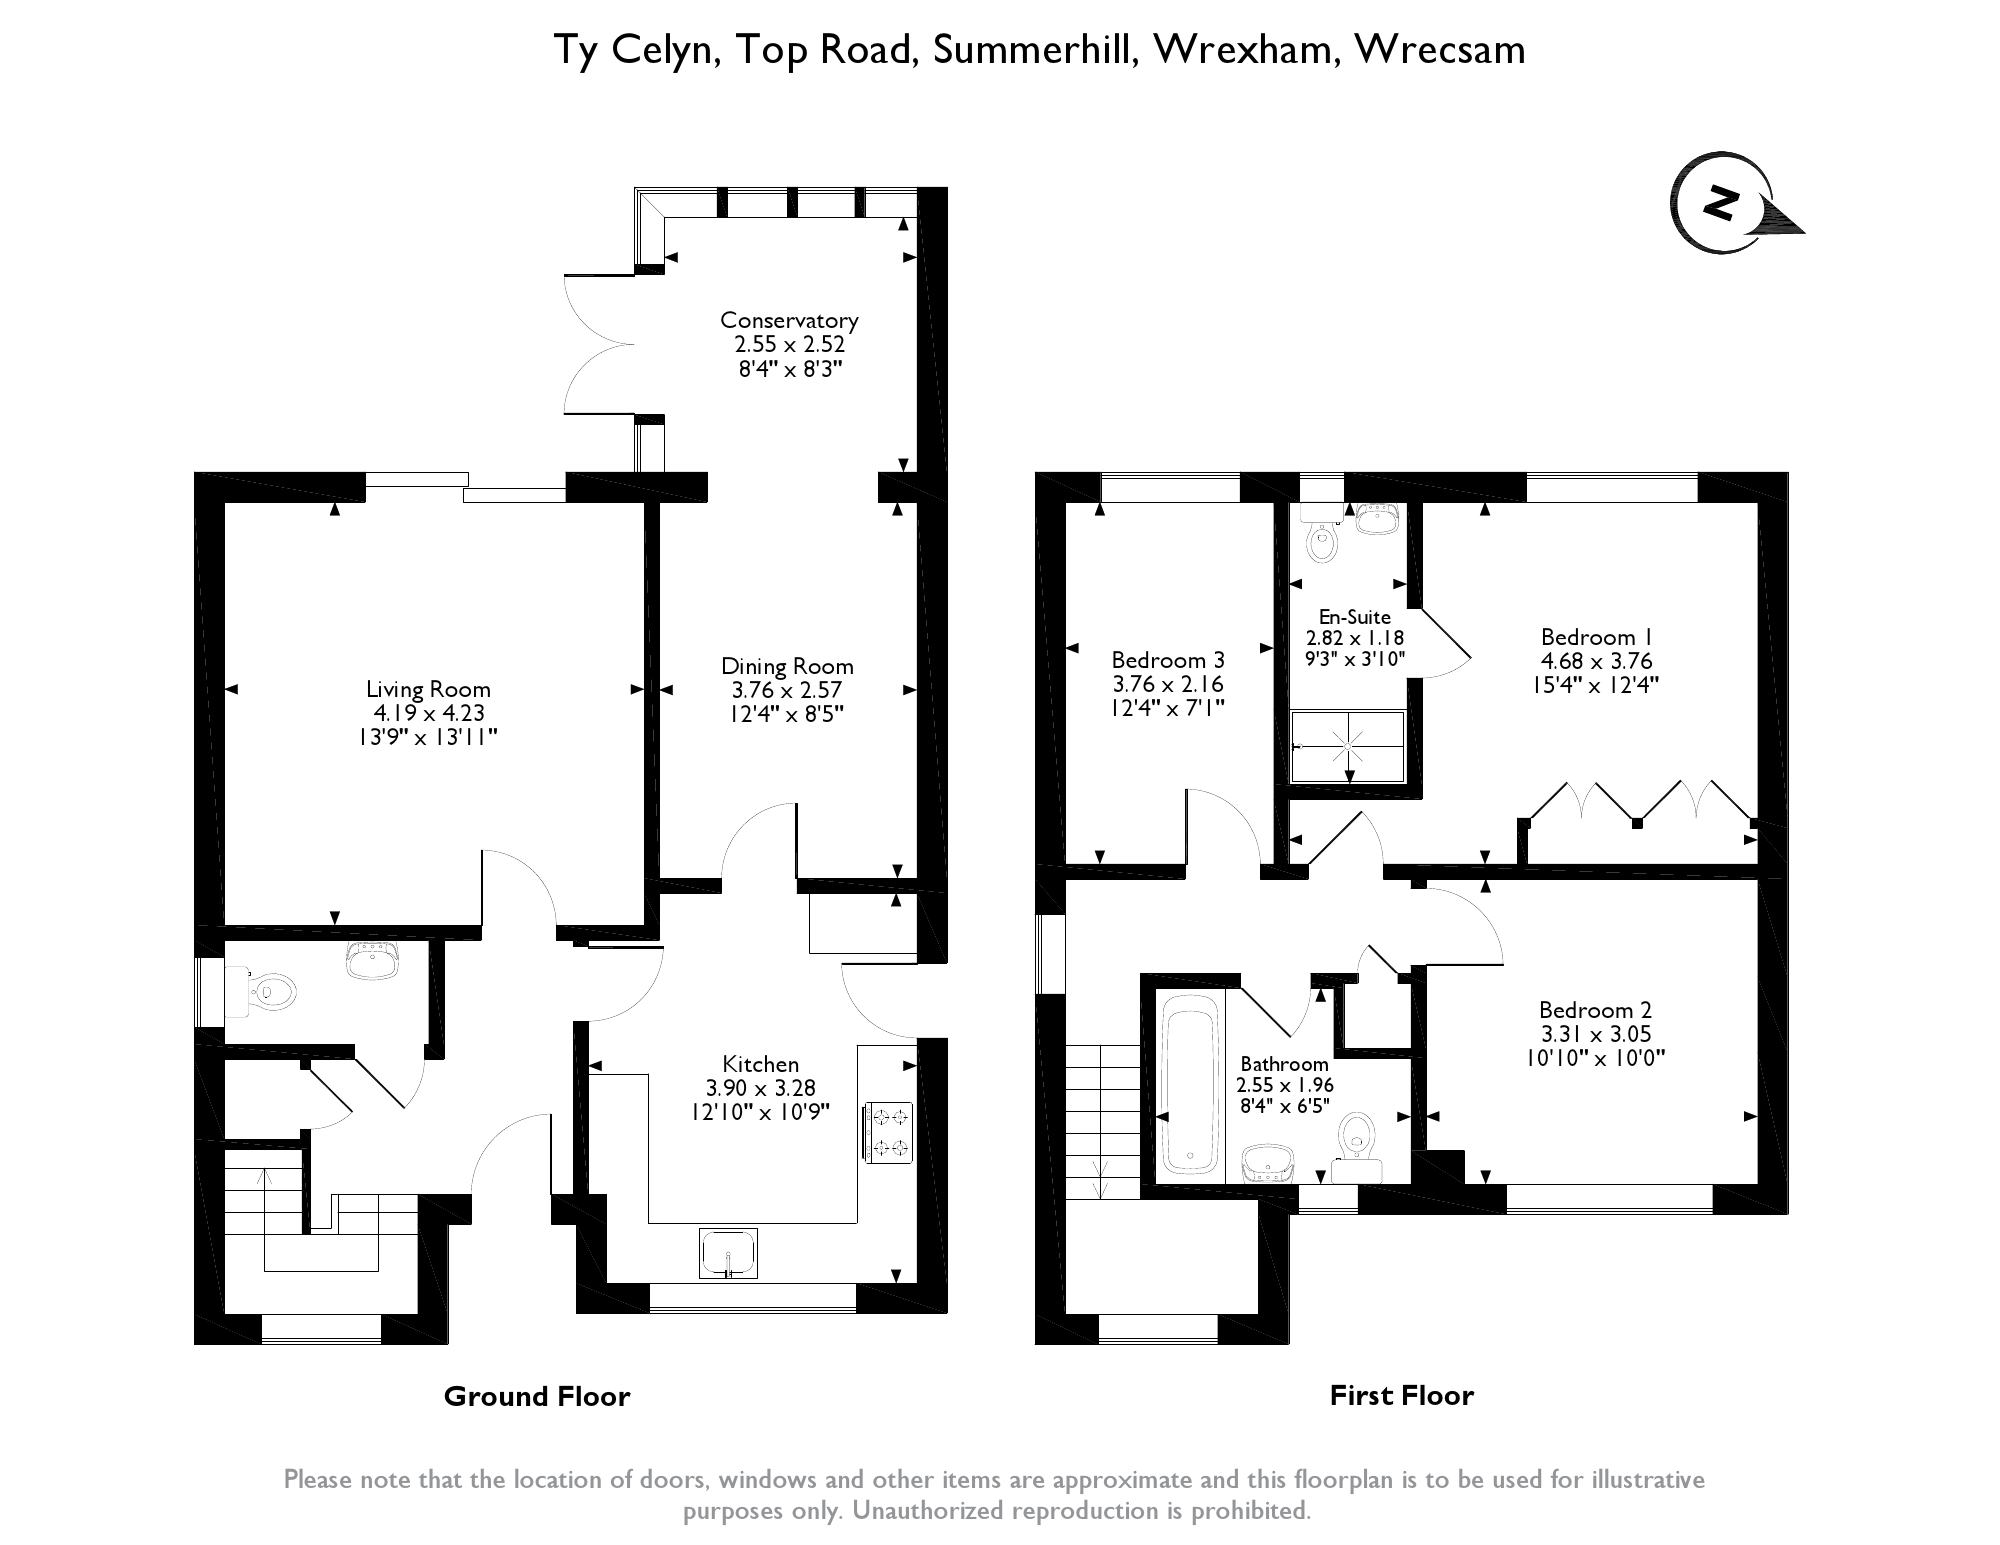 Top Road, Summerhill, Wrexham, LL11 floor plan